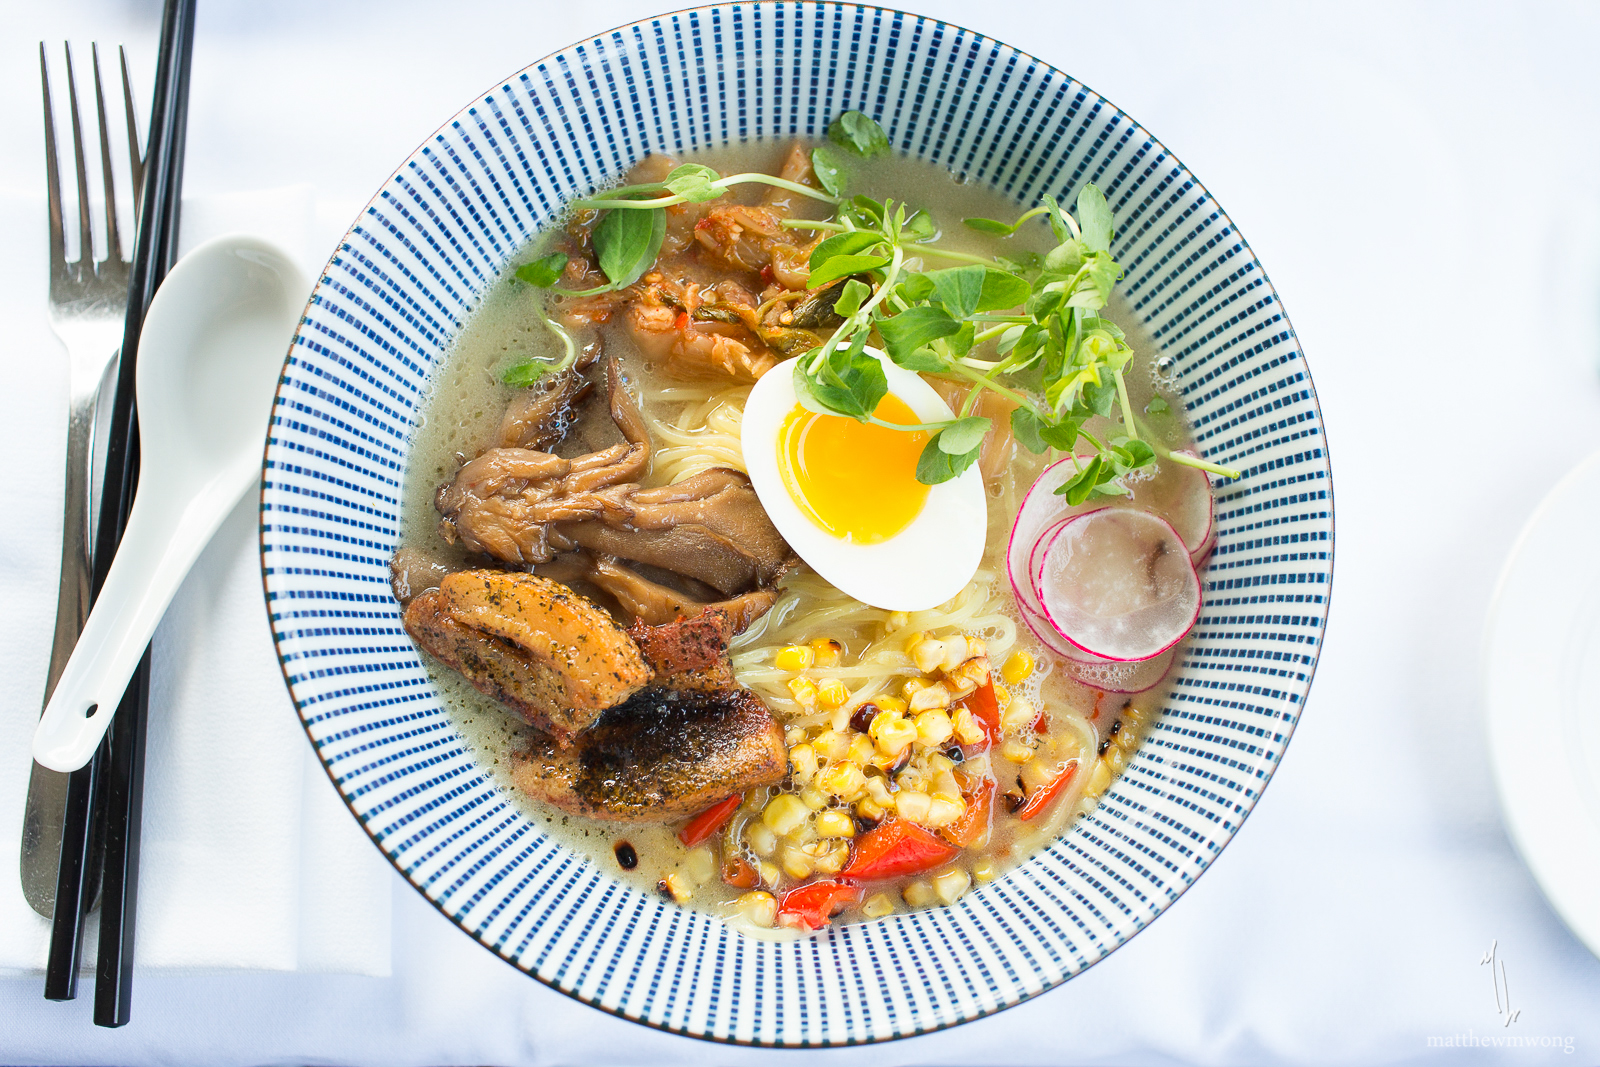 Tonkotsu Ramen- Pork belly, soft boiled egg, soy pickled mushrooms, roasted sweet peppers, grilled corn, shaved radish, kimchi